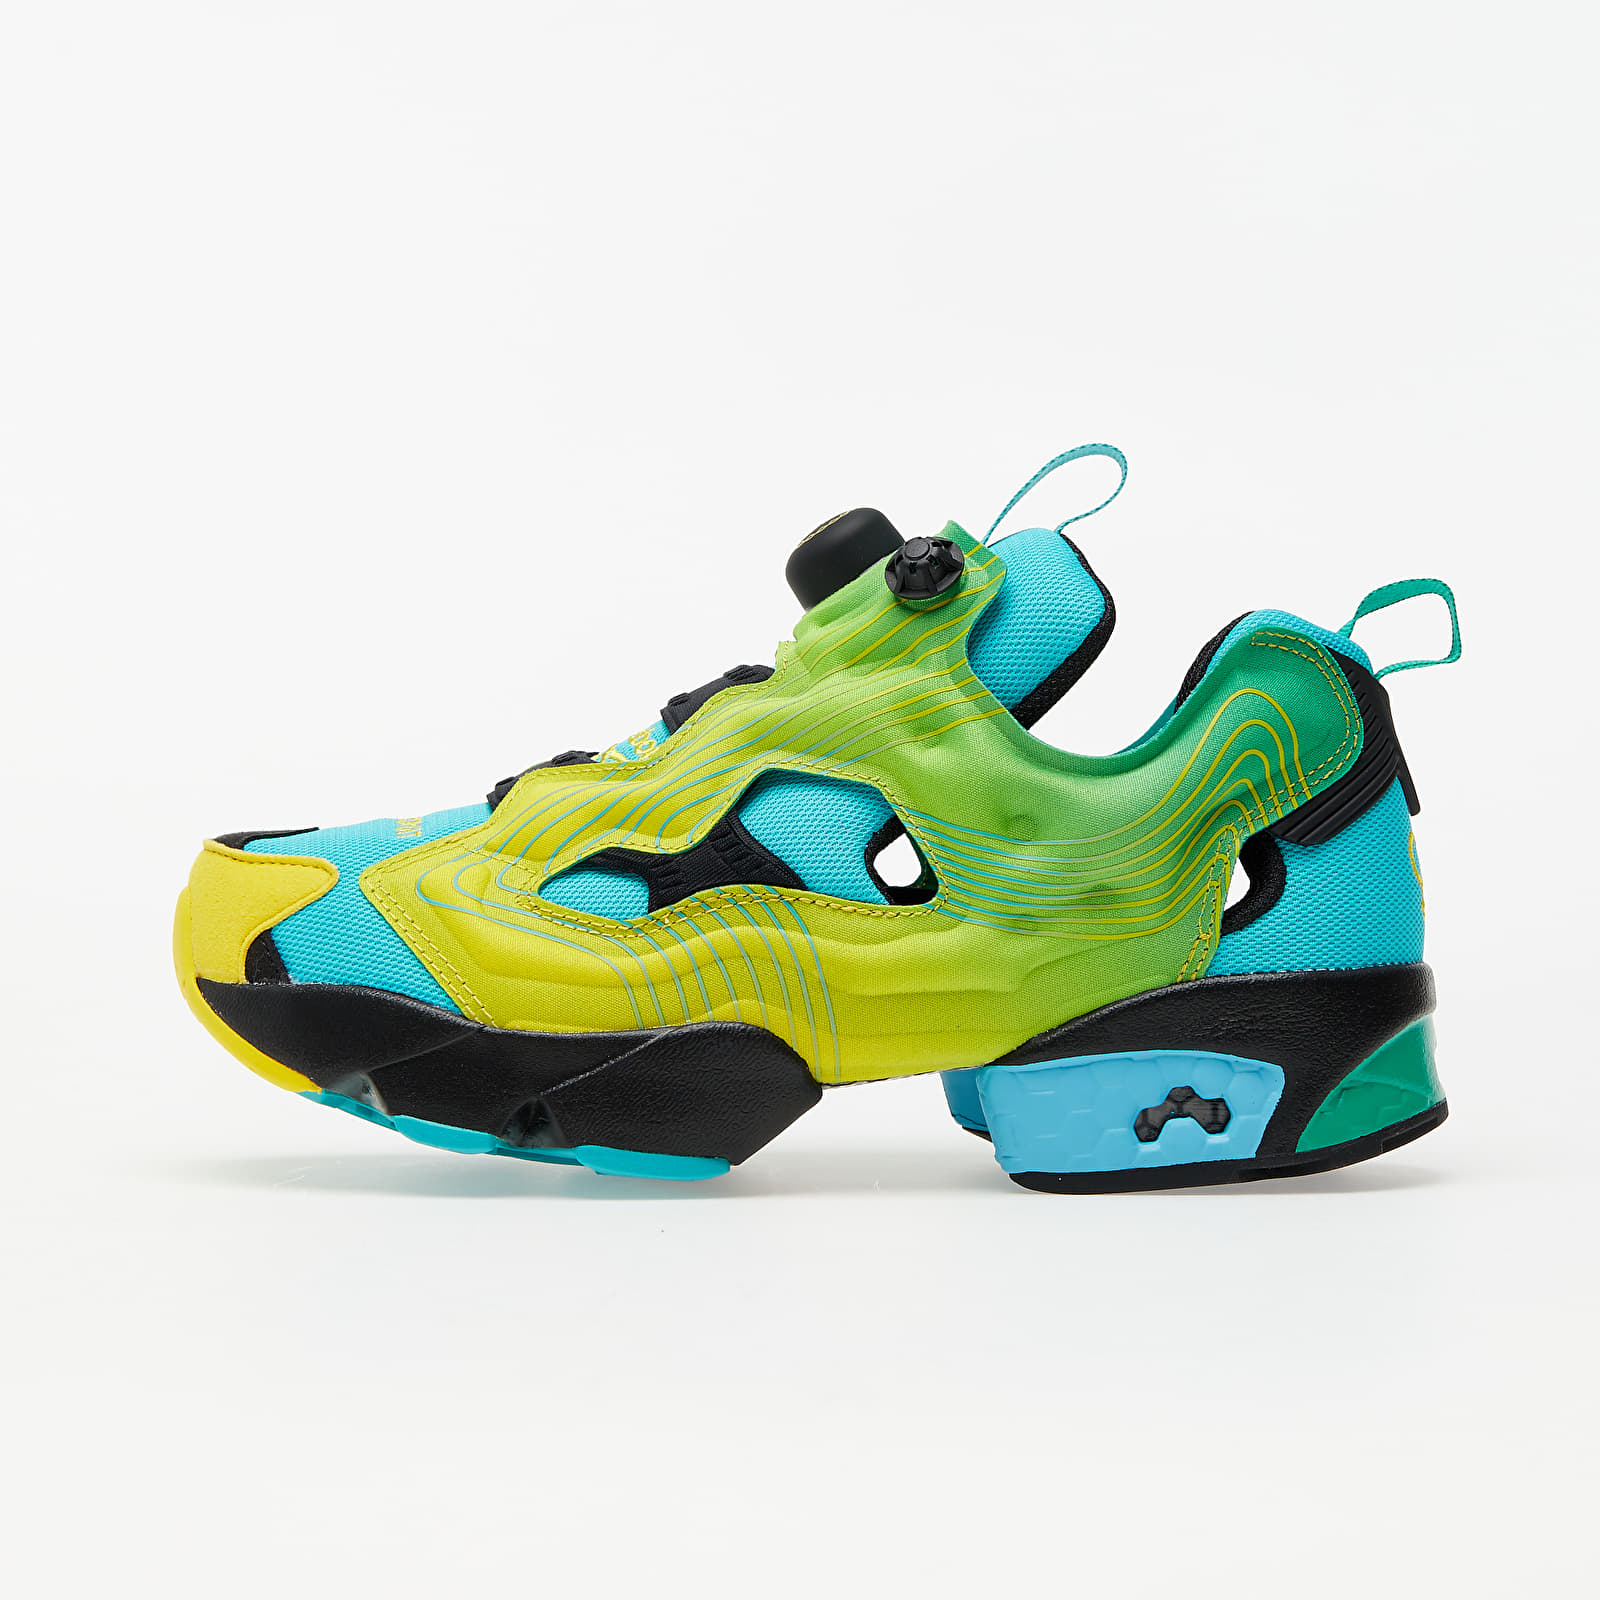 Men's shoes Reebok Instapump Fury Emerald/ Ale Yellow/ Glam Blue